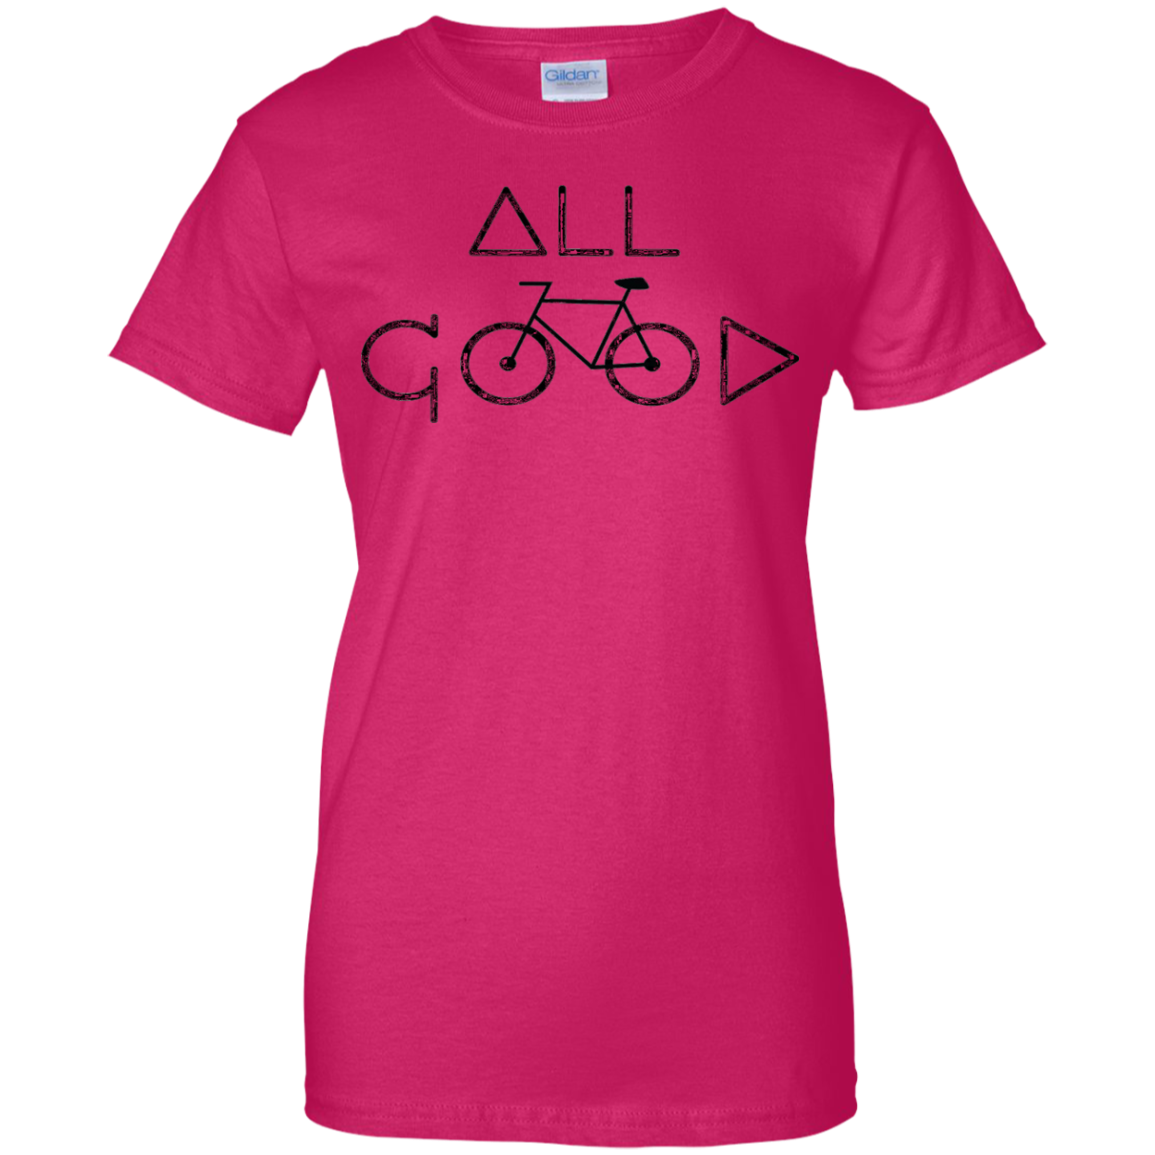 ALL GOOD BIKE T-Shirt Cycling Biking Road Bike